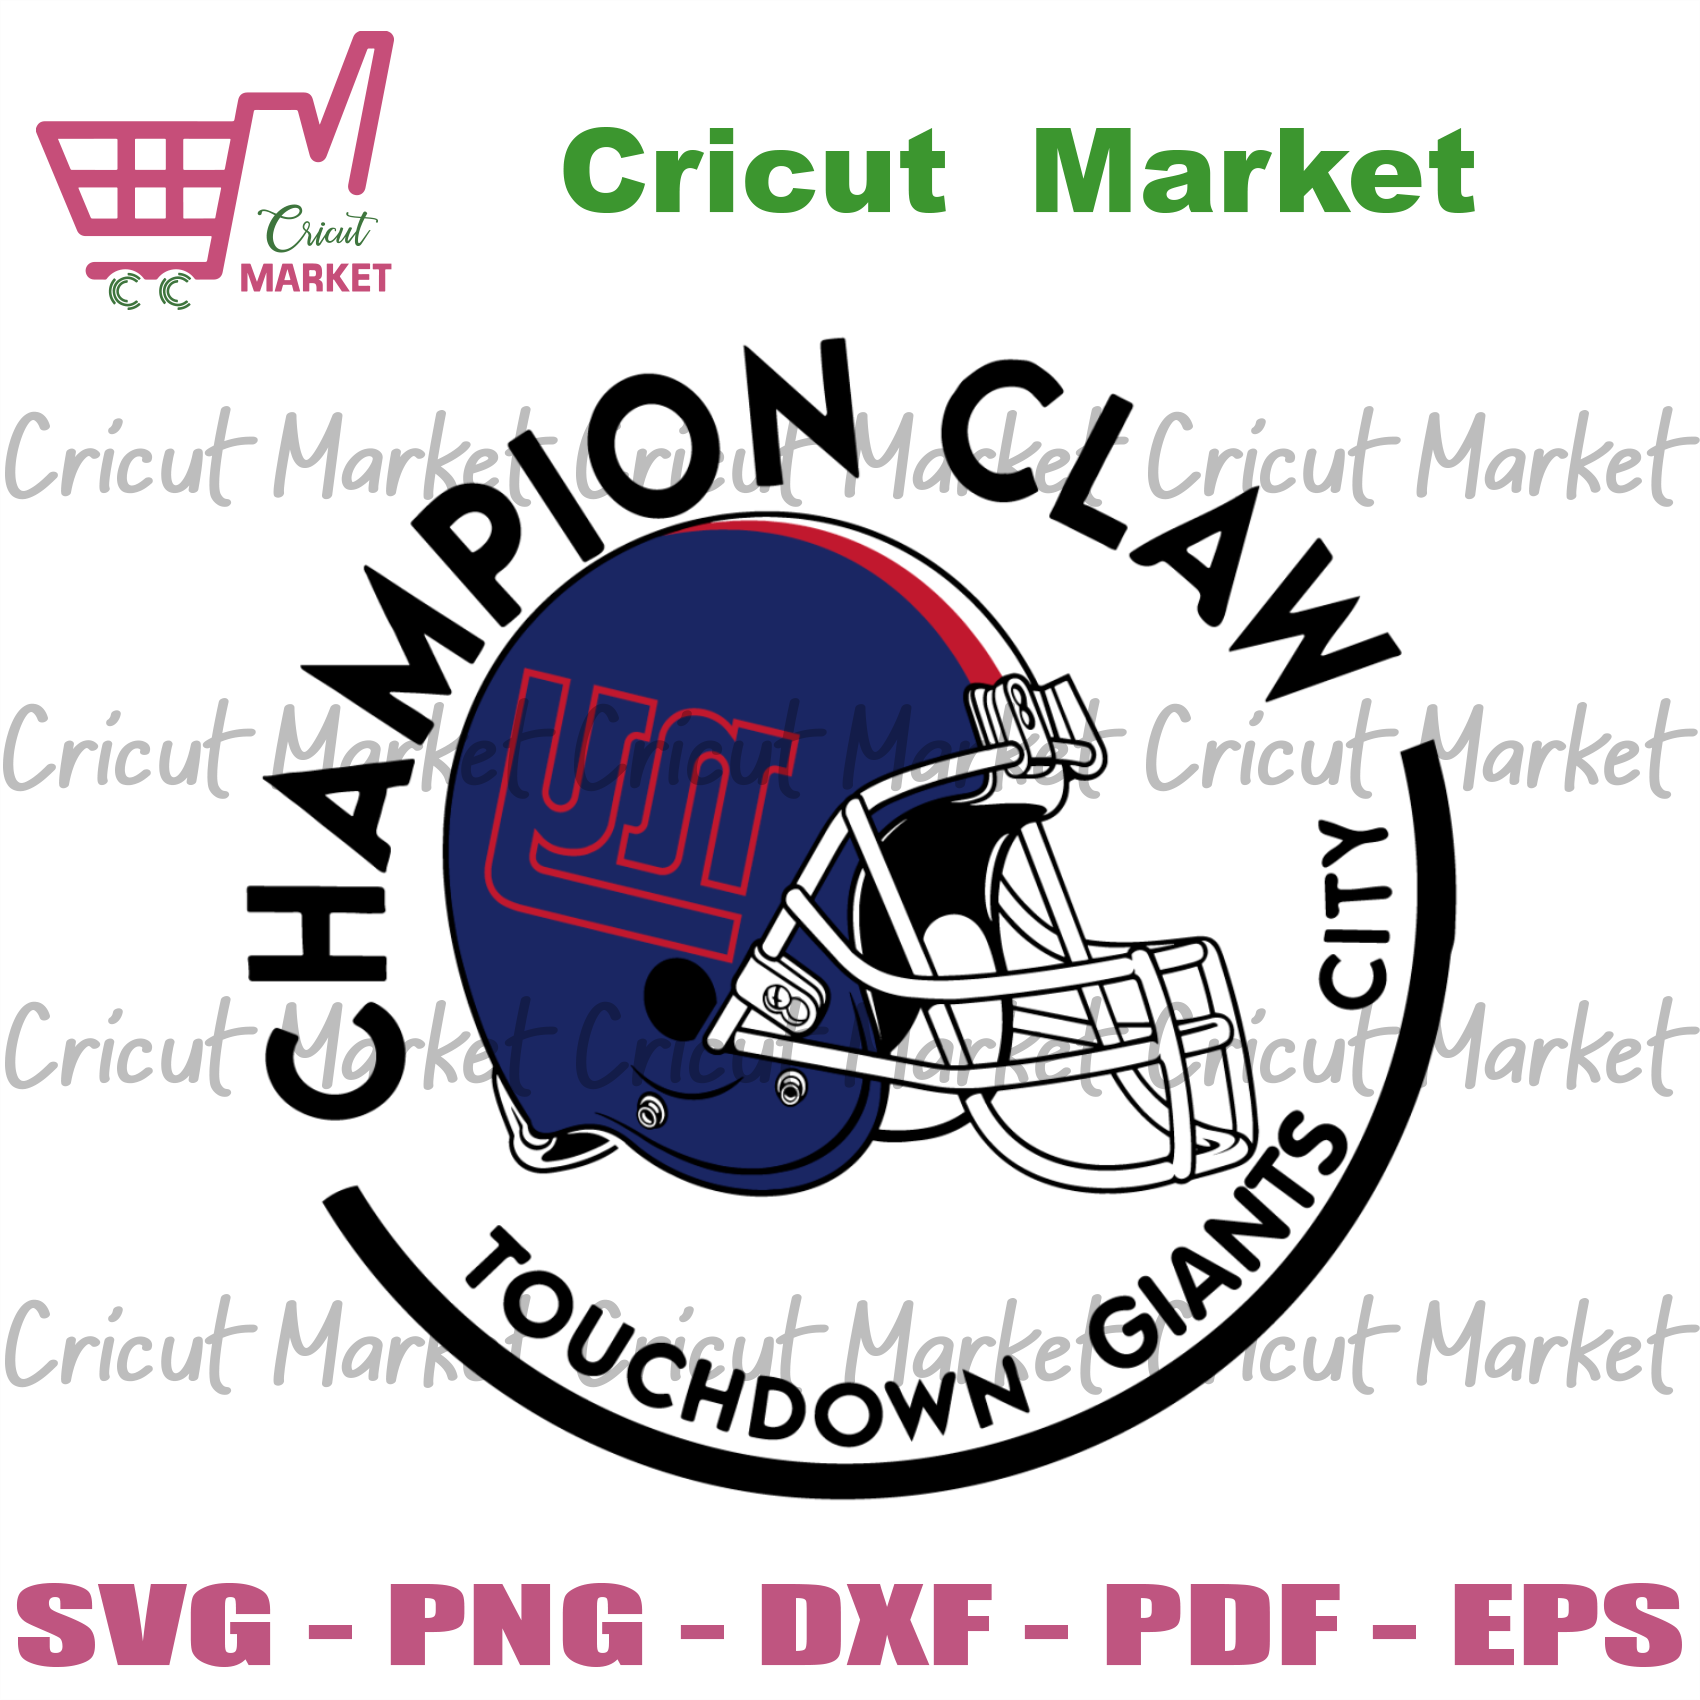 Champion Claw Touchdown Giants City Svg, Sport Svg, New York Giants Svg, New York Giants Football Team Svg, New York Giants Helmet Svg, New York Giants Logo Svg, New York Giants Fans, Champio